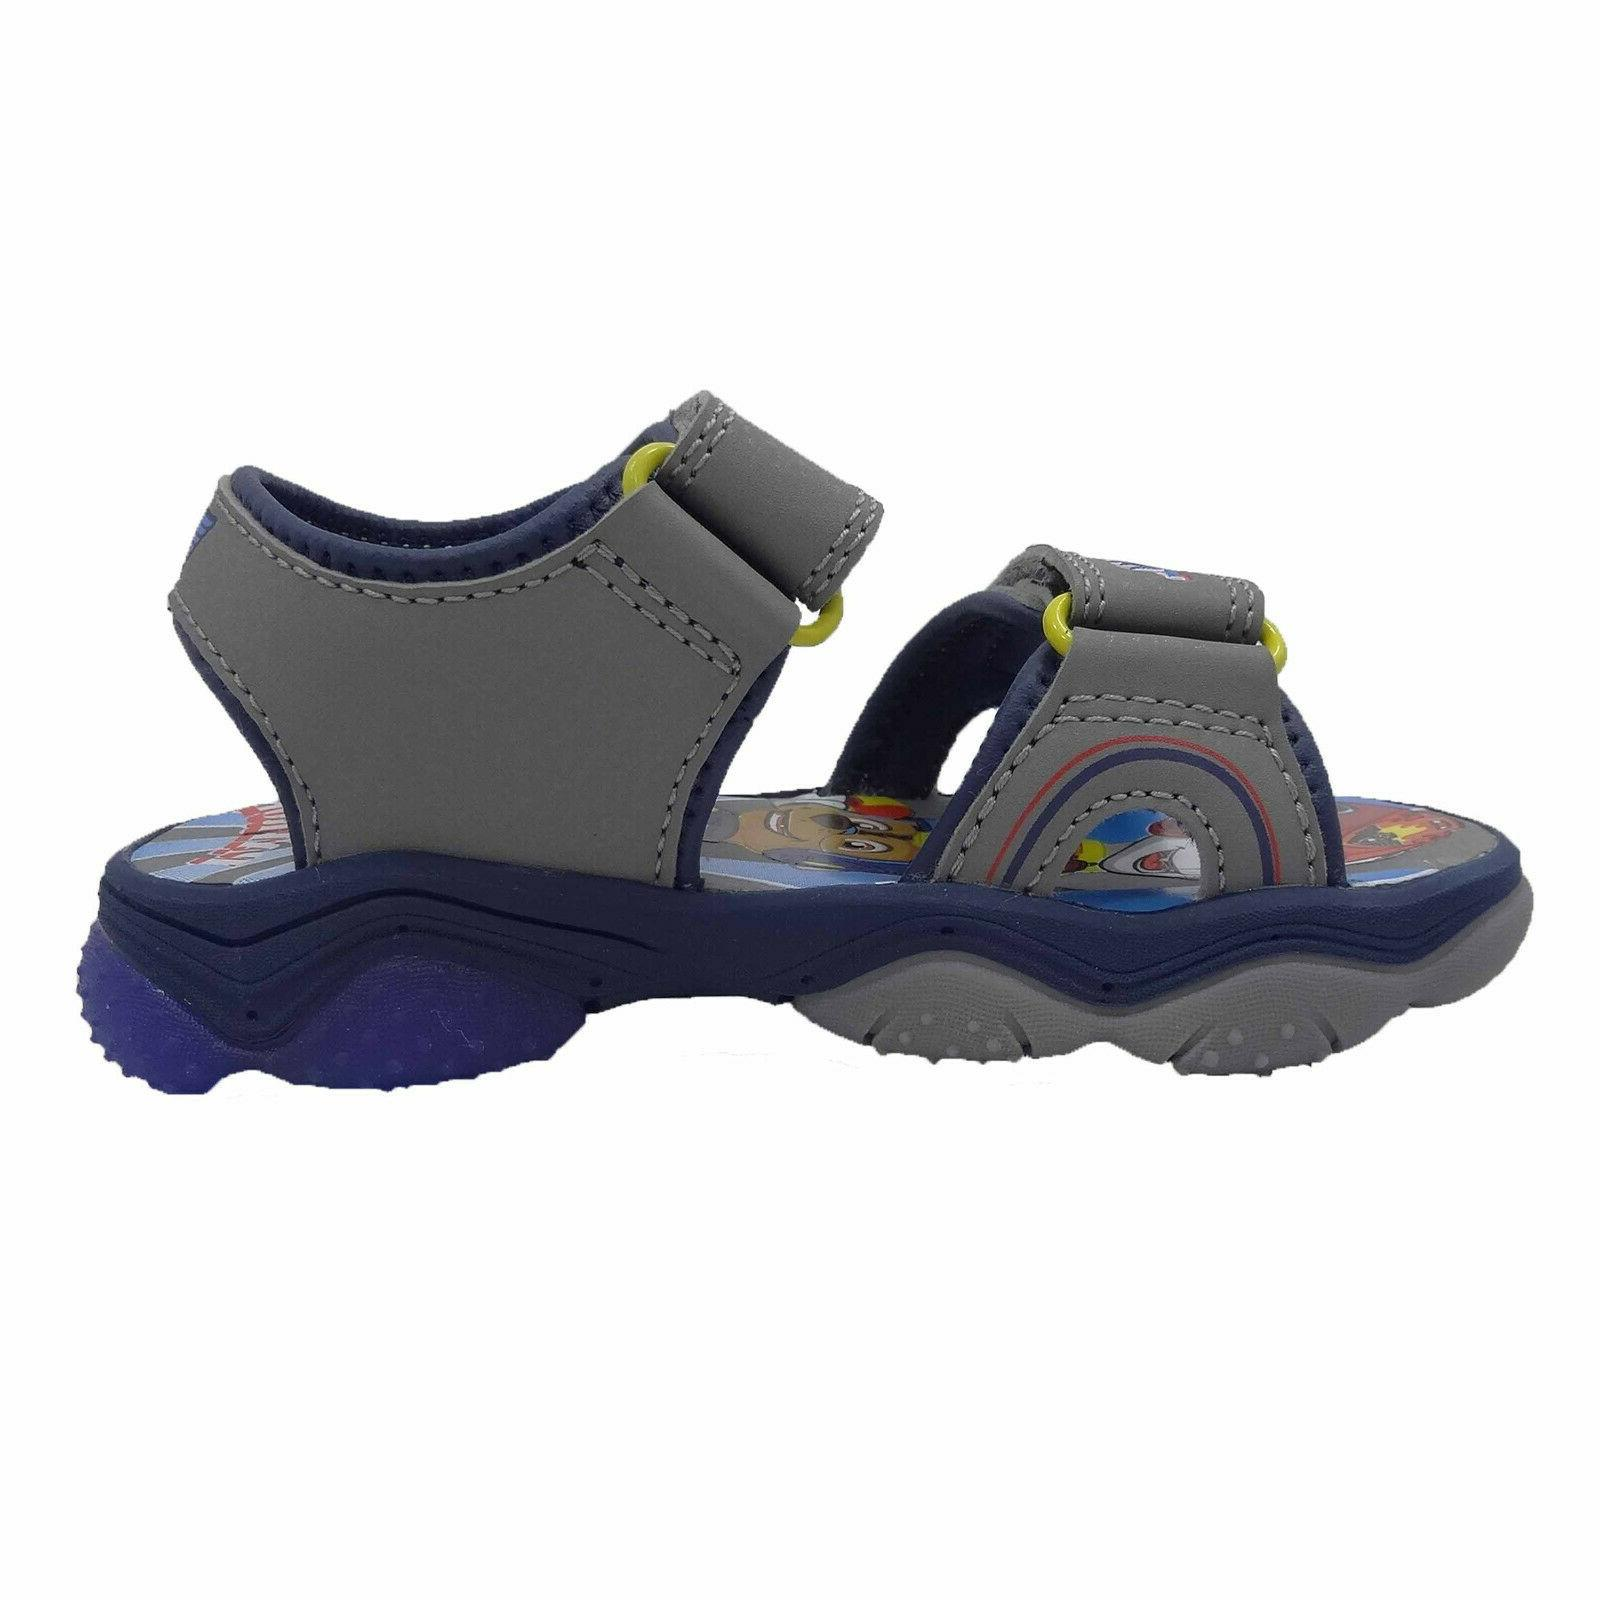 NEW Toddler Boys Paw Gray Sport Sandals Size 8